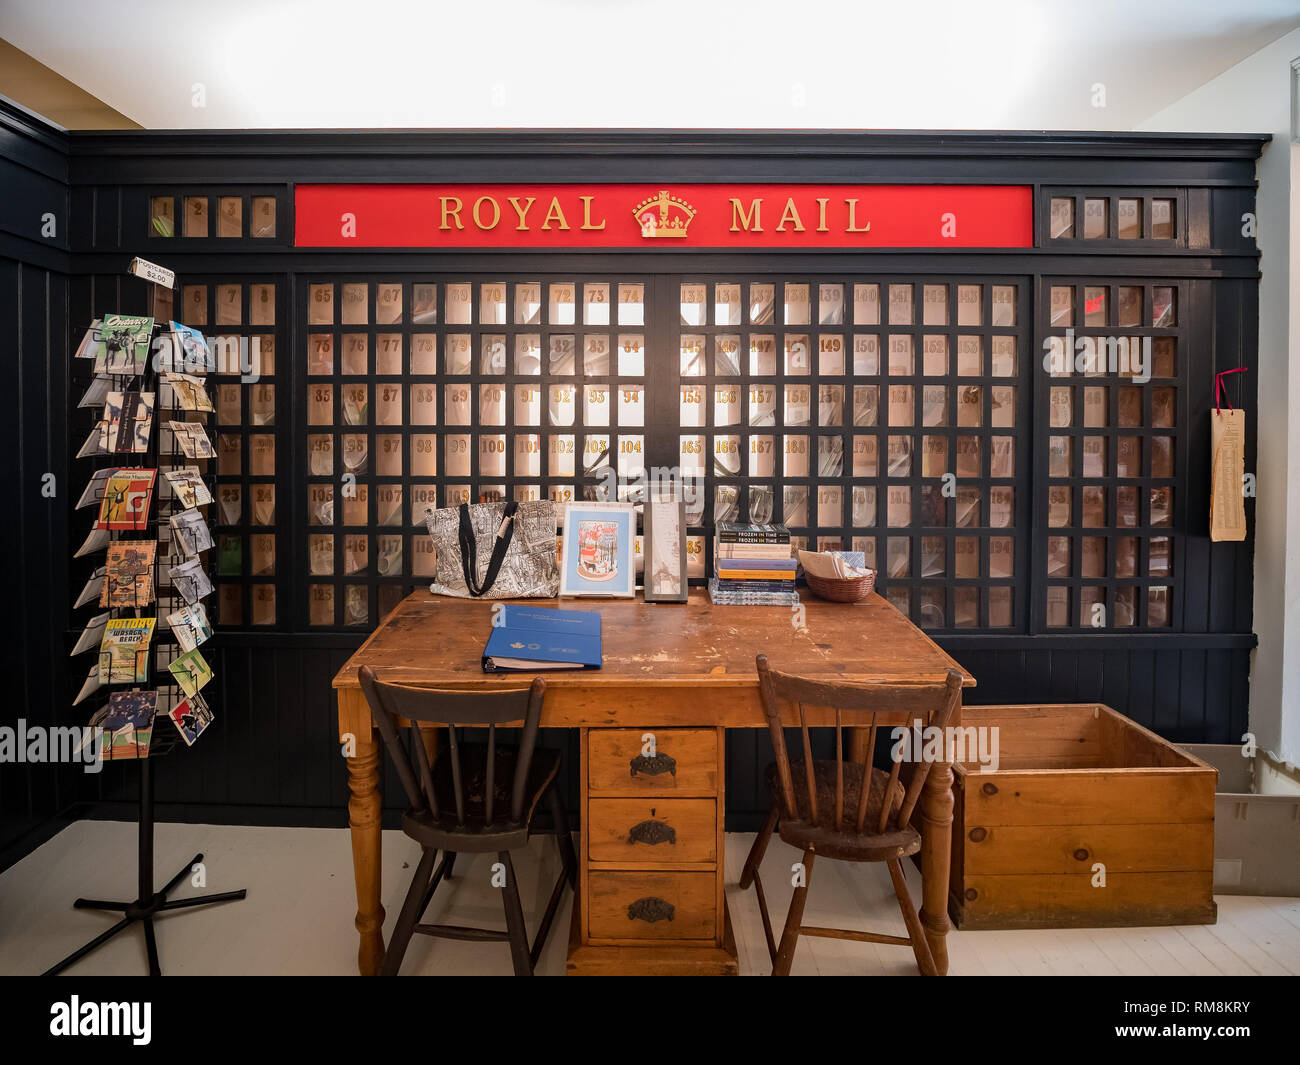 Toronto, OCT 6: Interior view of the Toronto's First Post Office on OCT 6, 2018 at Toronto, Canada - Stock Image